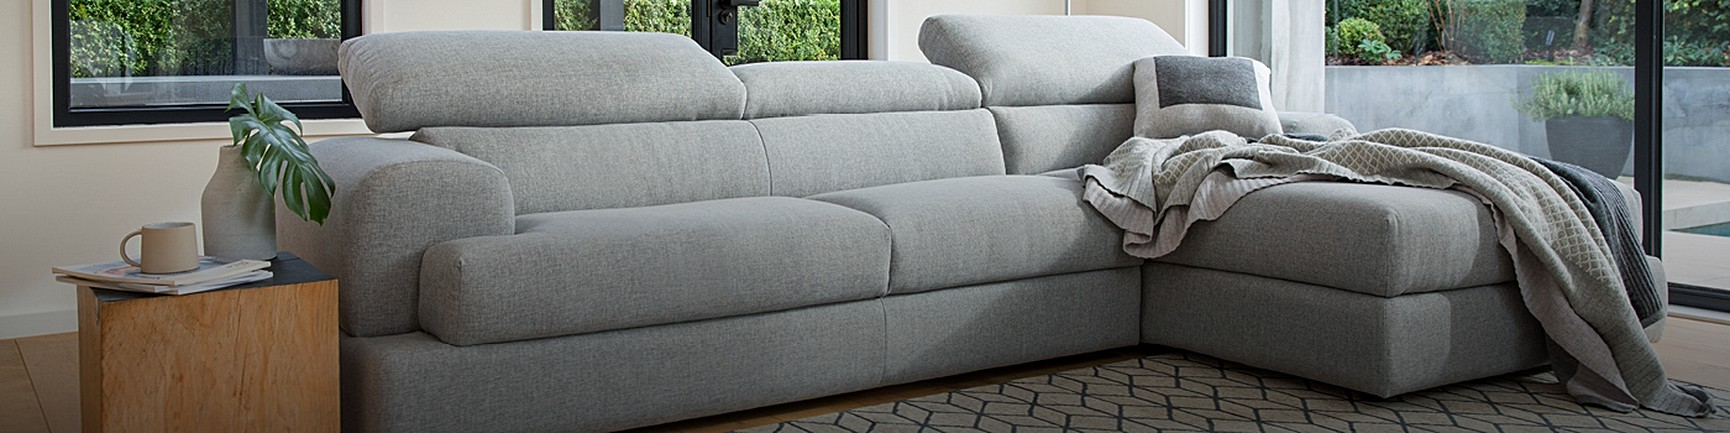 Why Choose Fabric? Your Guide To Choosing A Fabric Sofa.